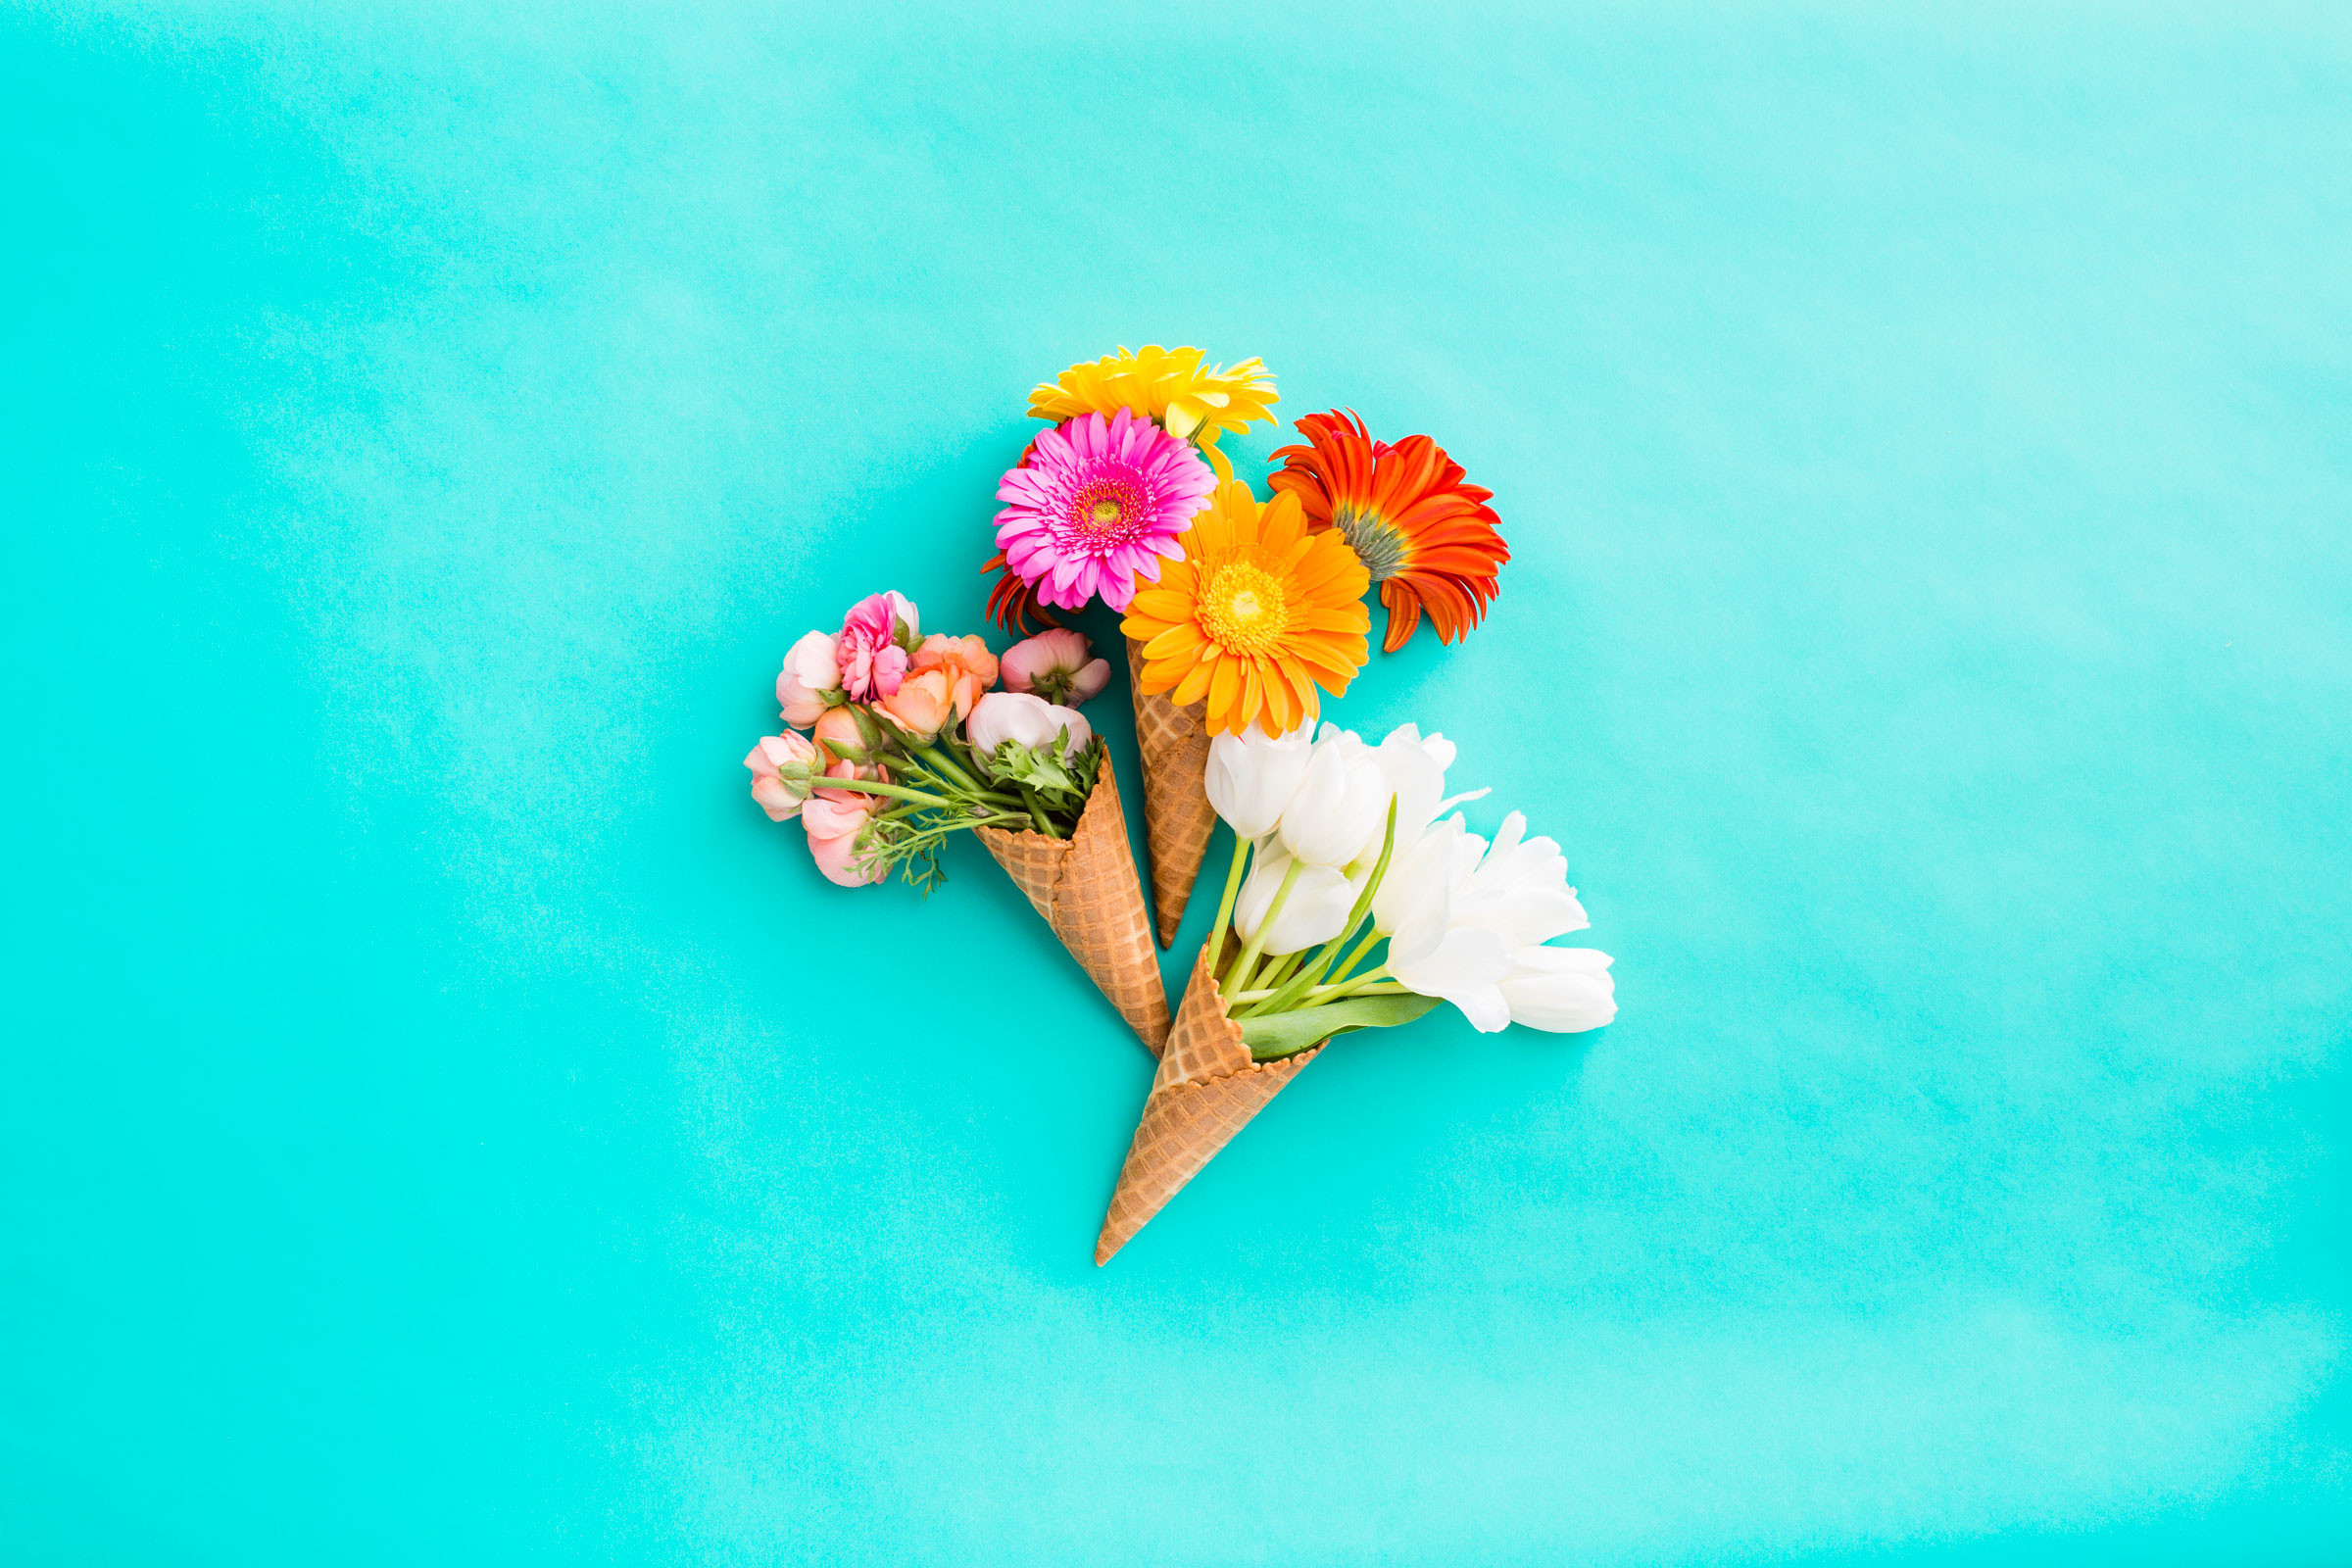 2400x1600 Download Floral Bunch of Ice Cream Cones